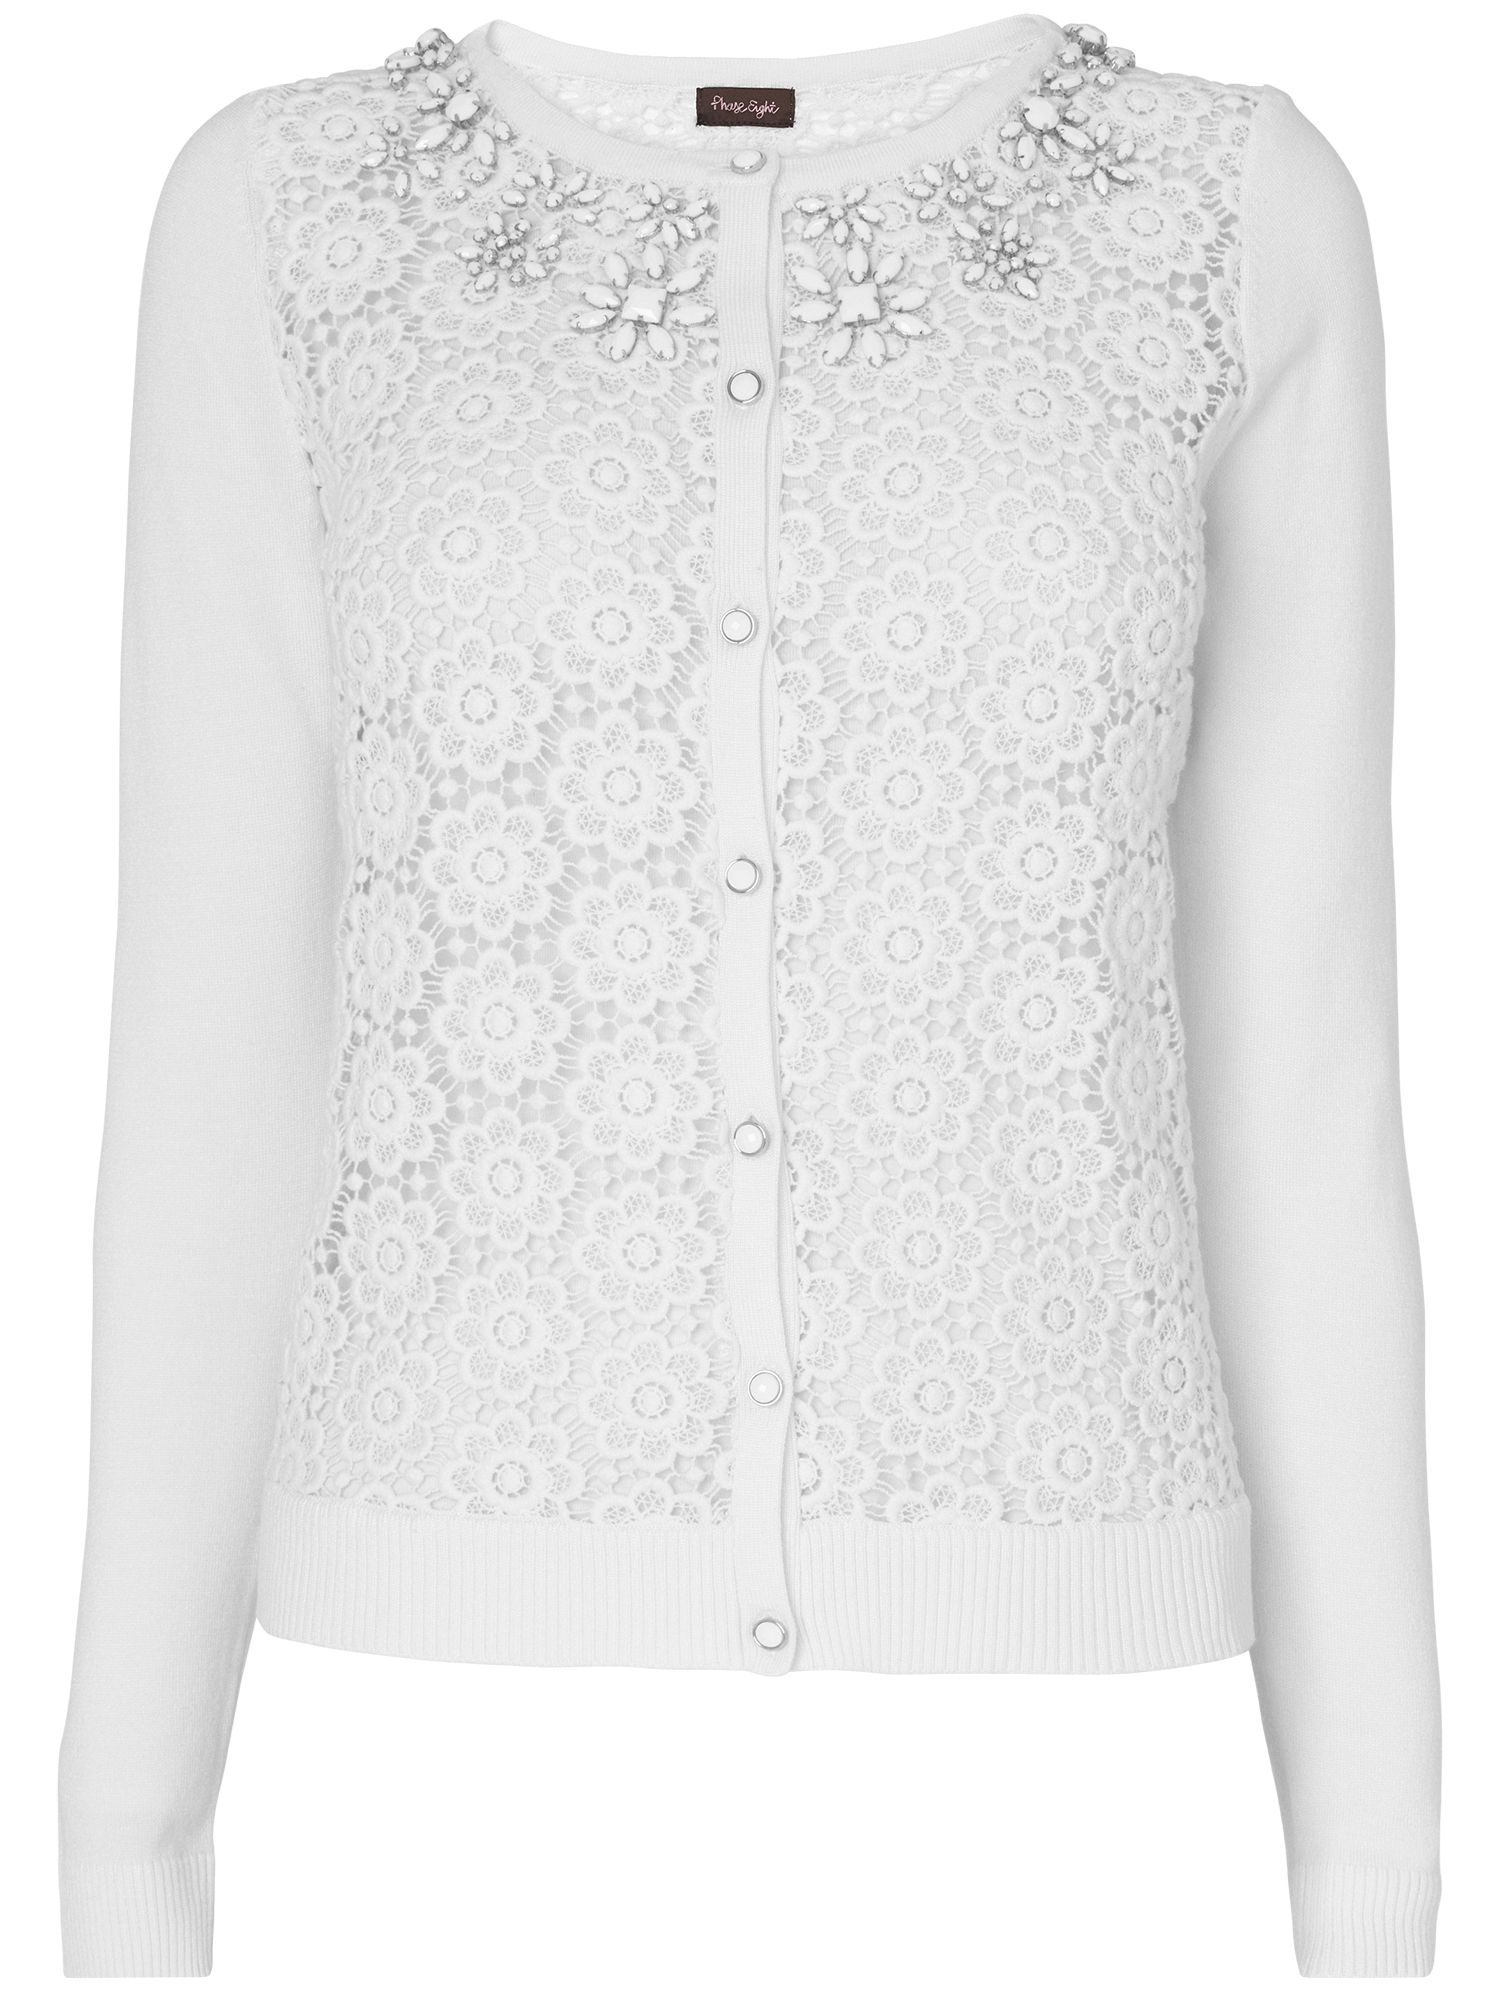 Milly lace cardigan